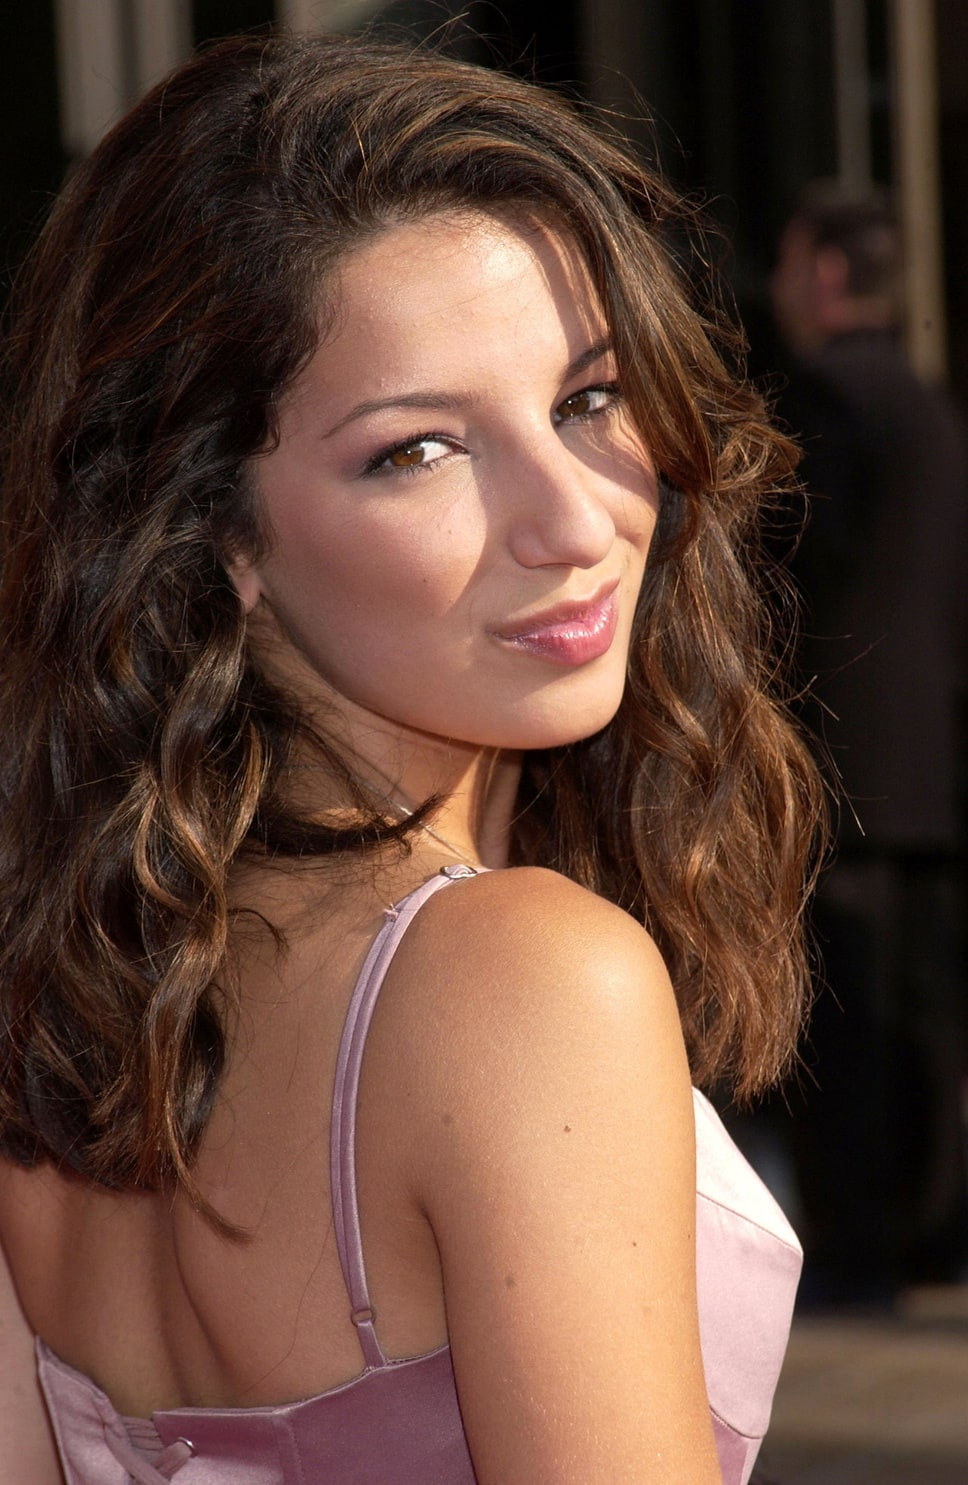 Fresh Talent: Q&A with Vanessa Lengies   Vegetarian Times